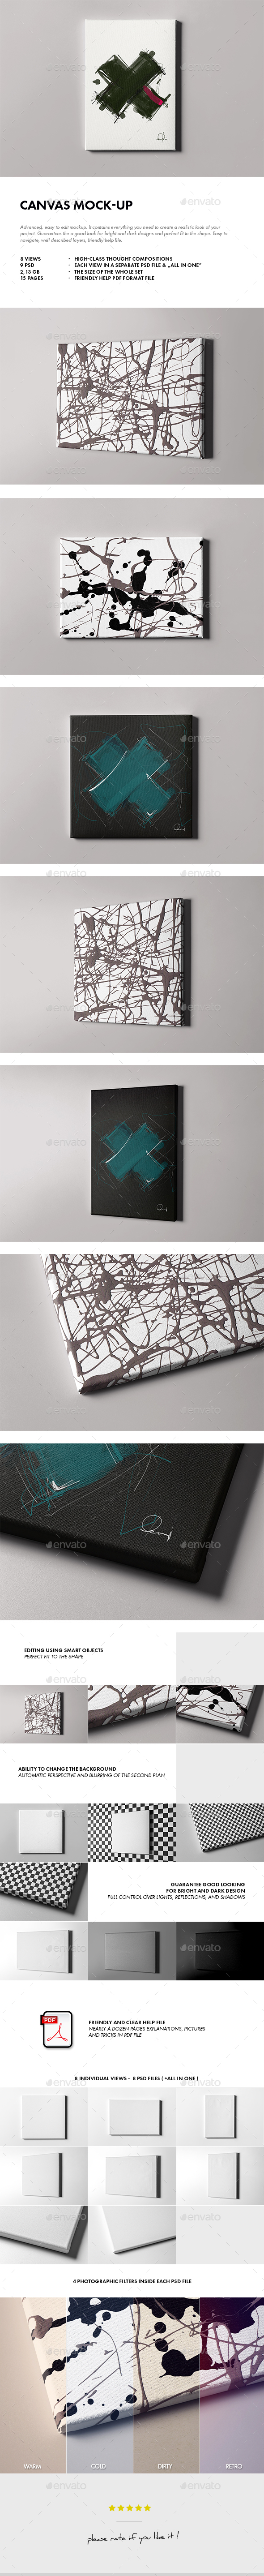 Canvas Mock-up - Miscellaneous Displays